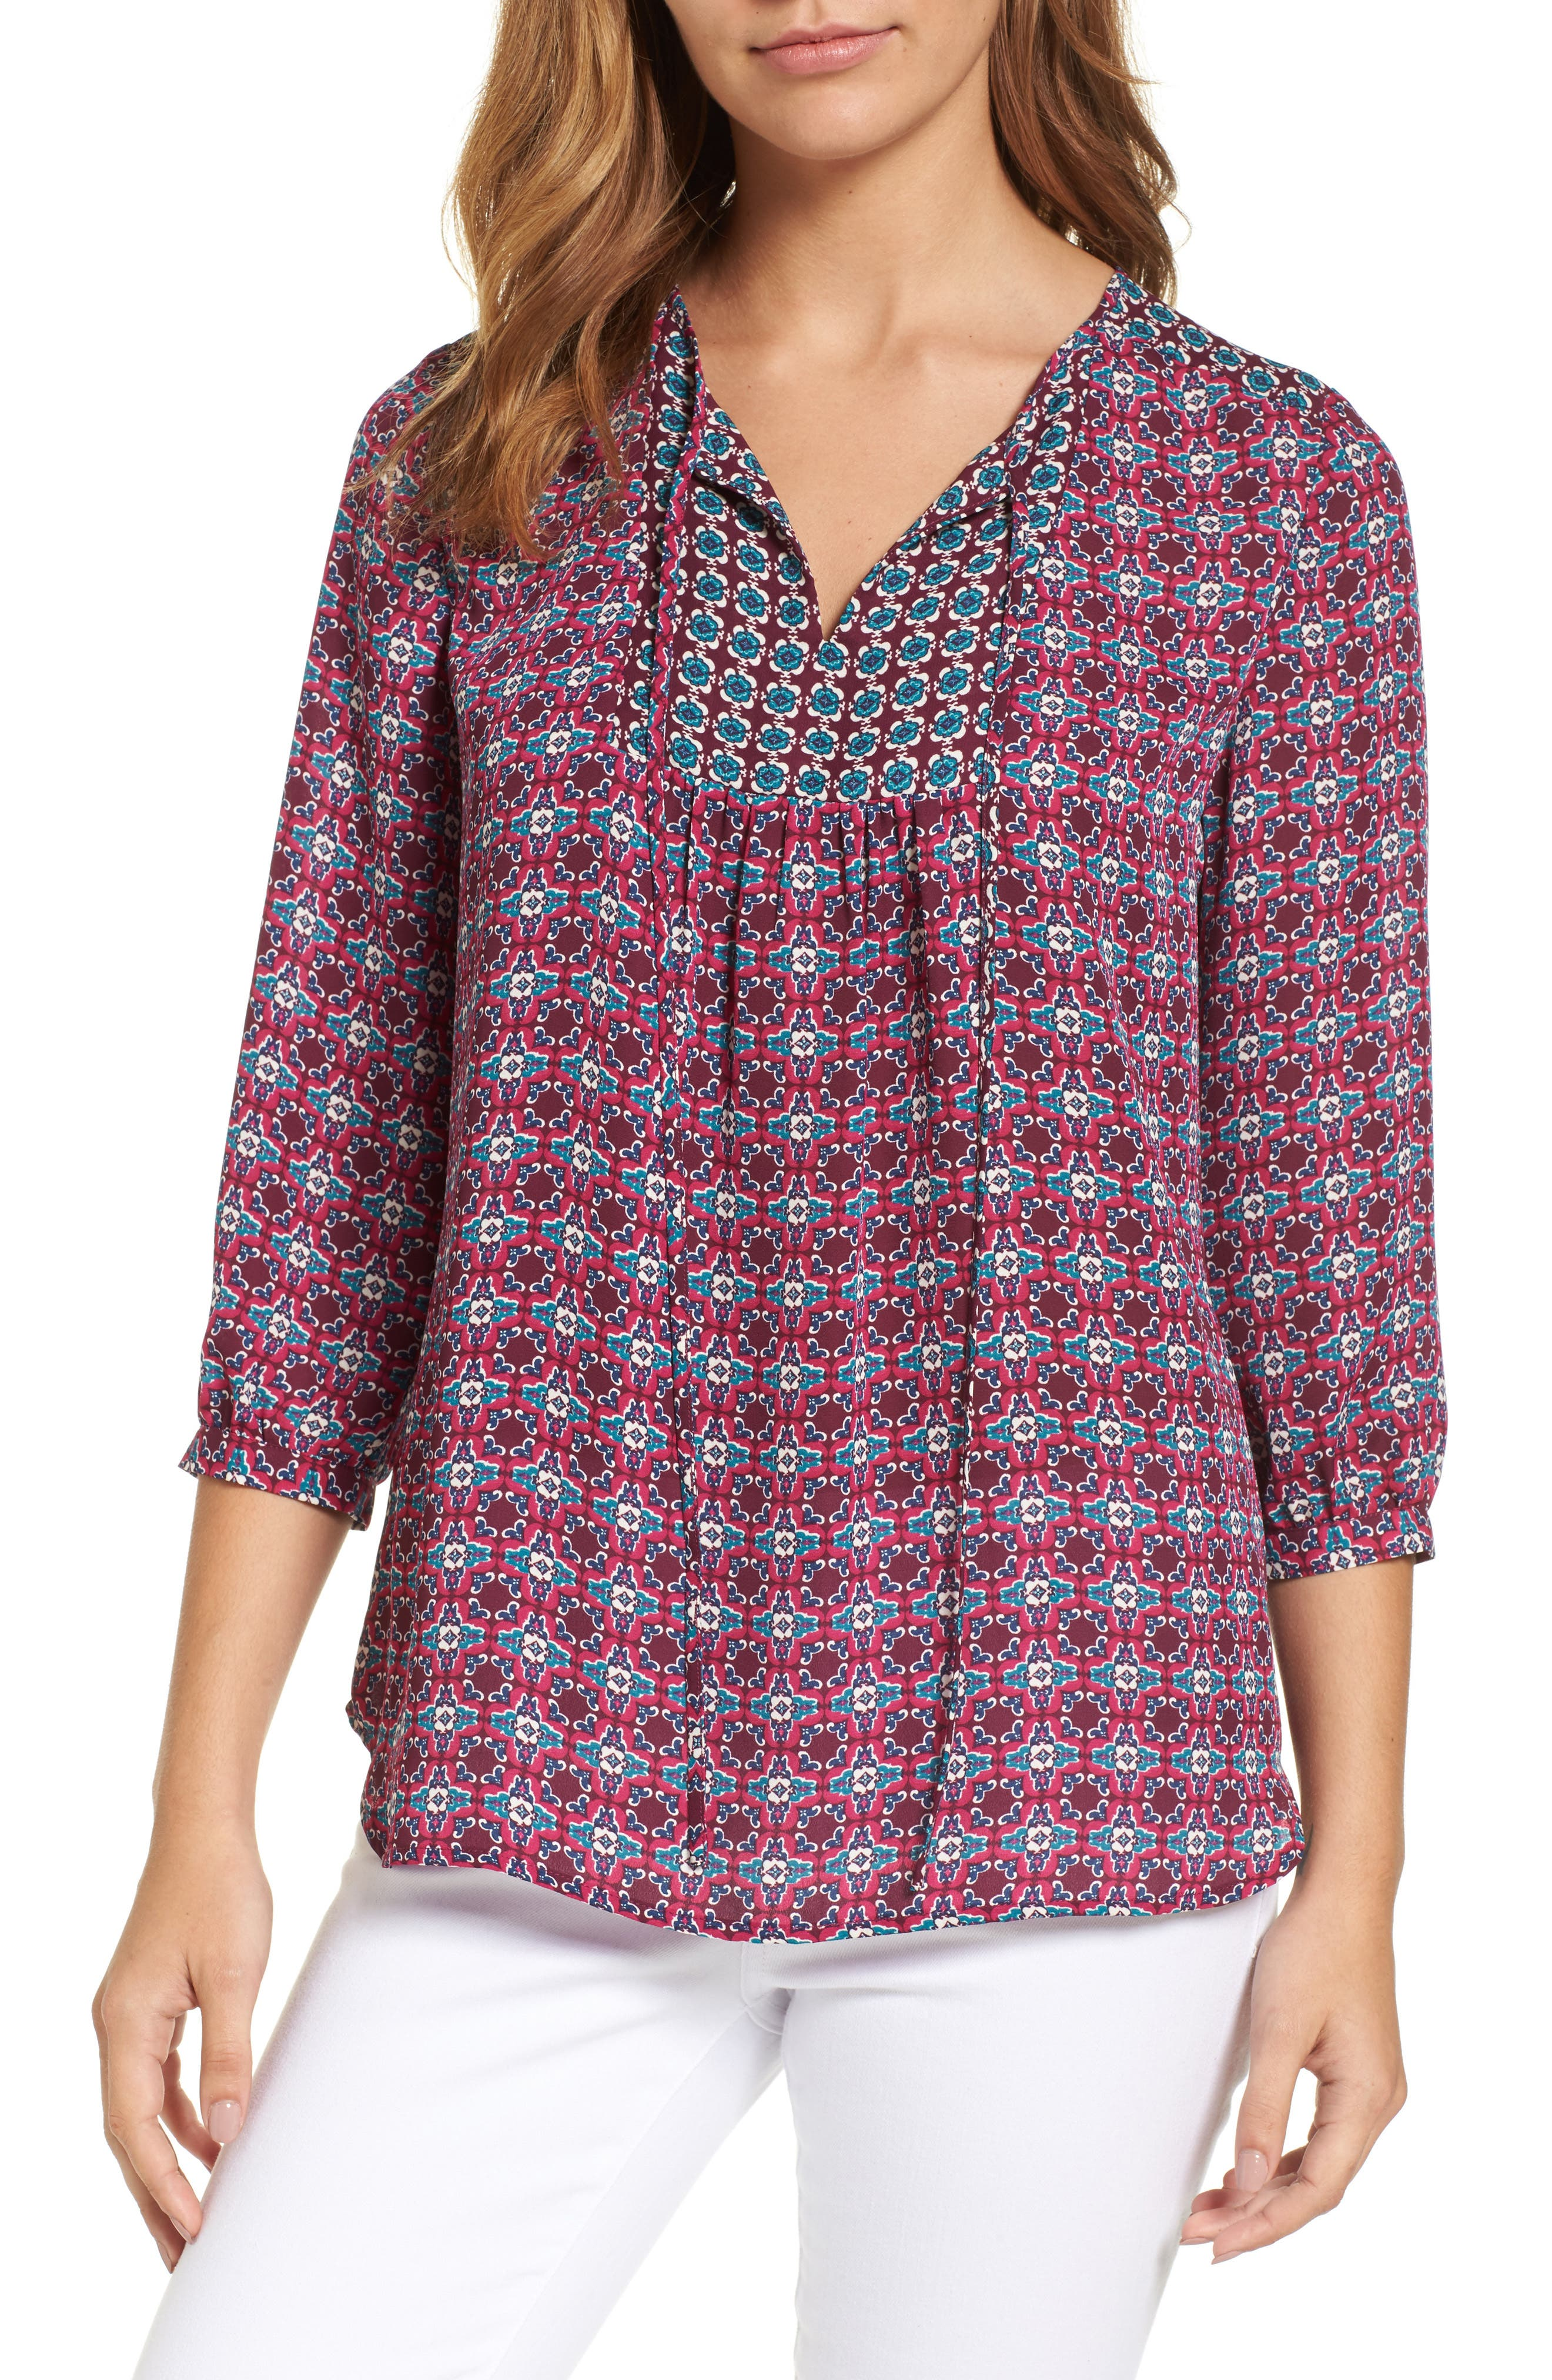 Alternate Image 1 Selected - KUT from the Kloth Maci Floral Top